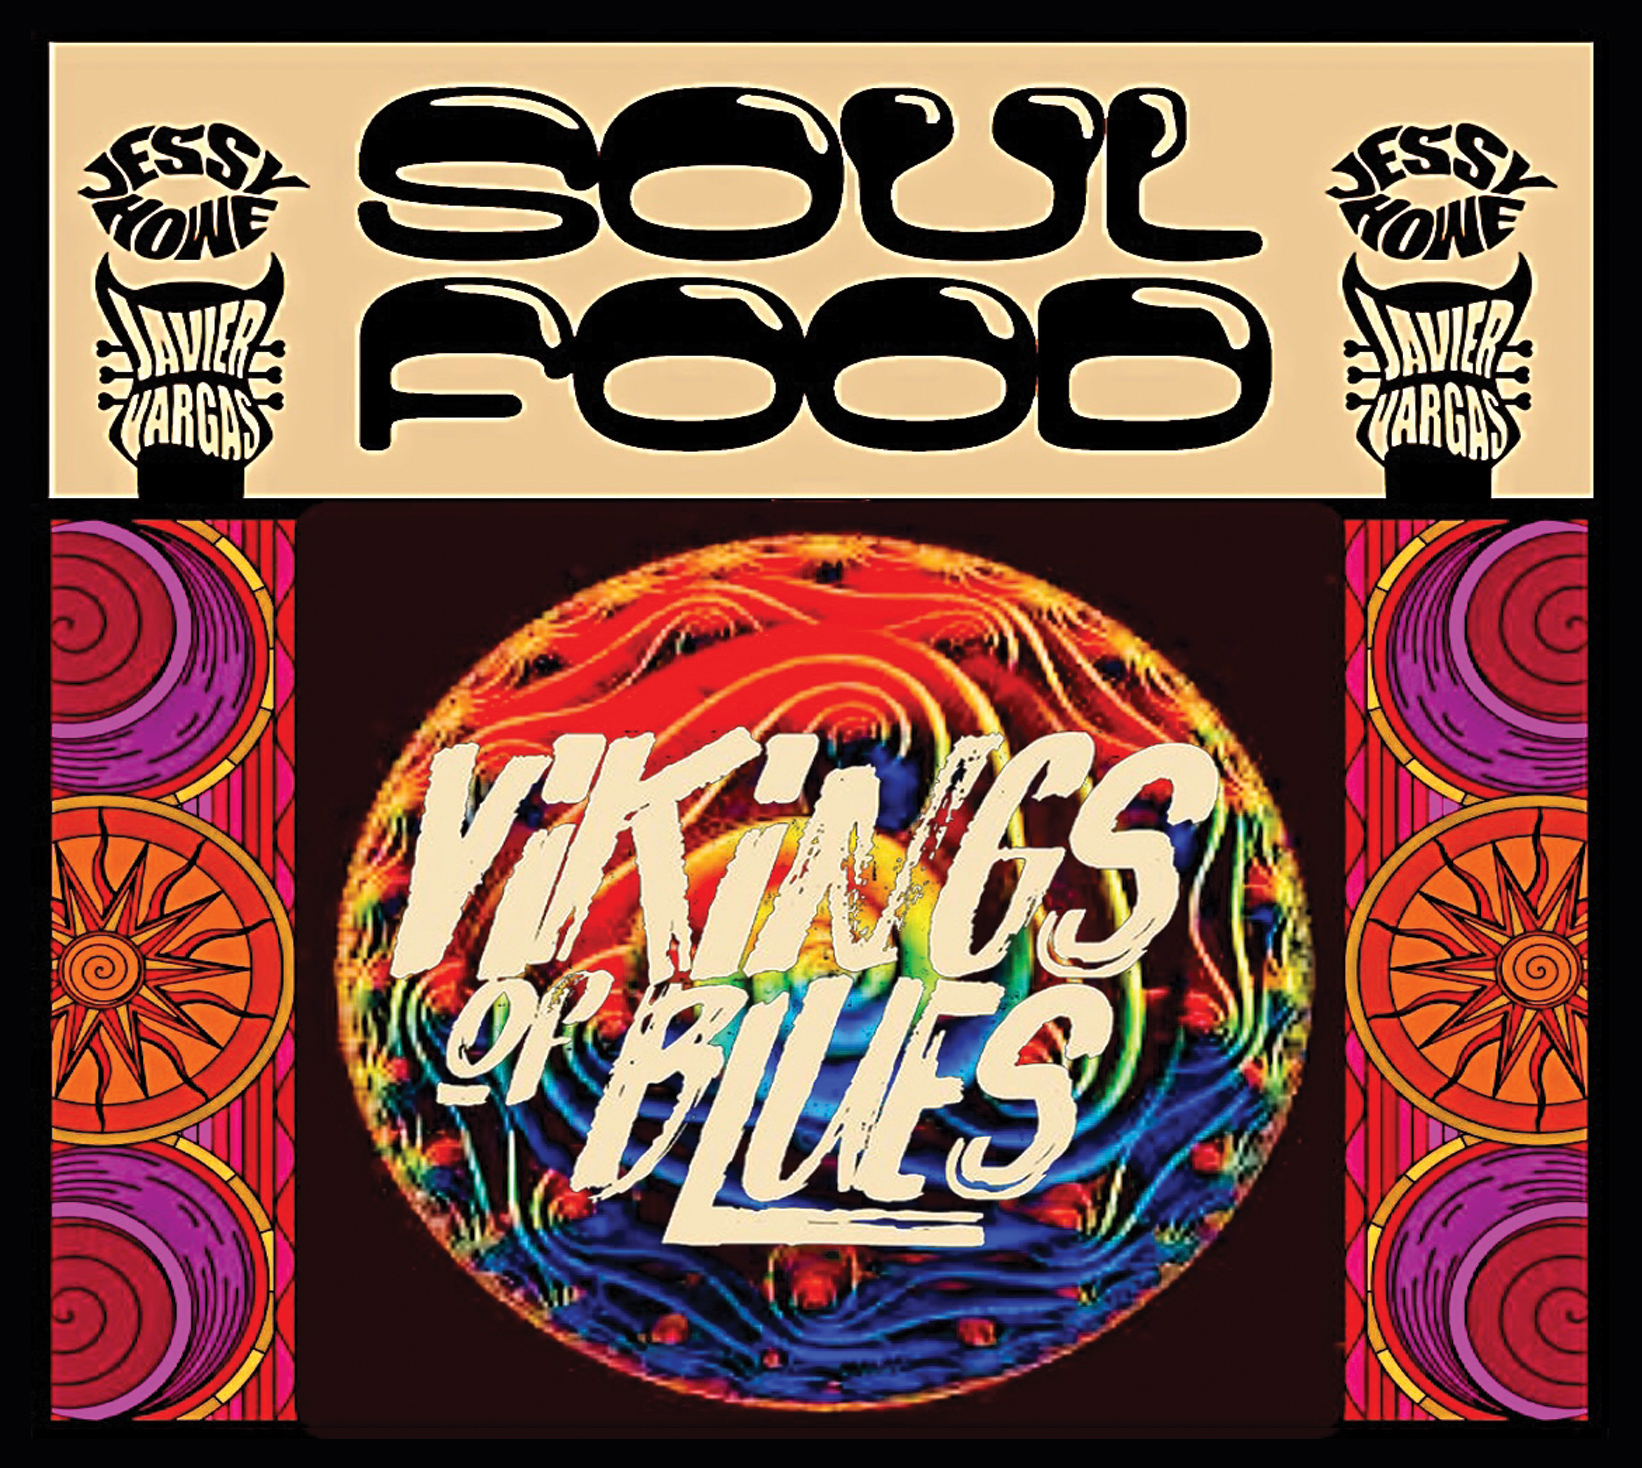 Vikings of Blues-Soul Food